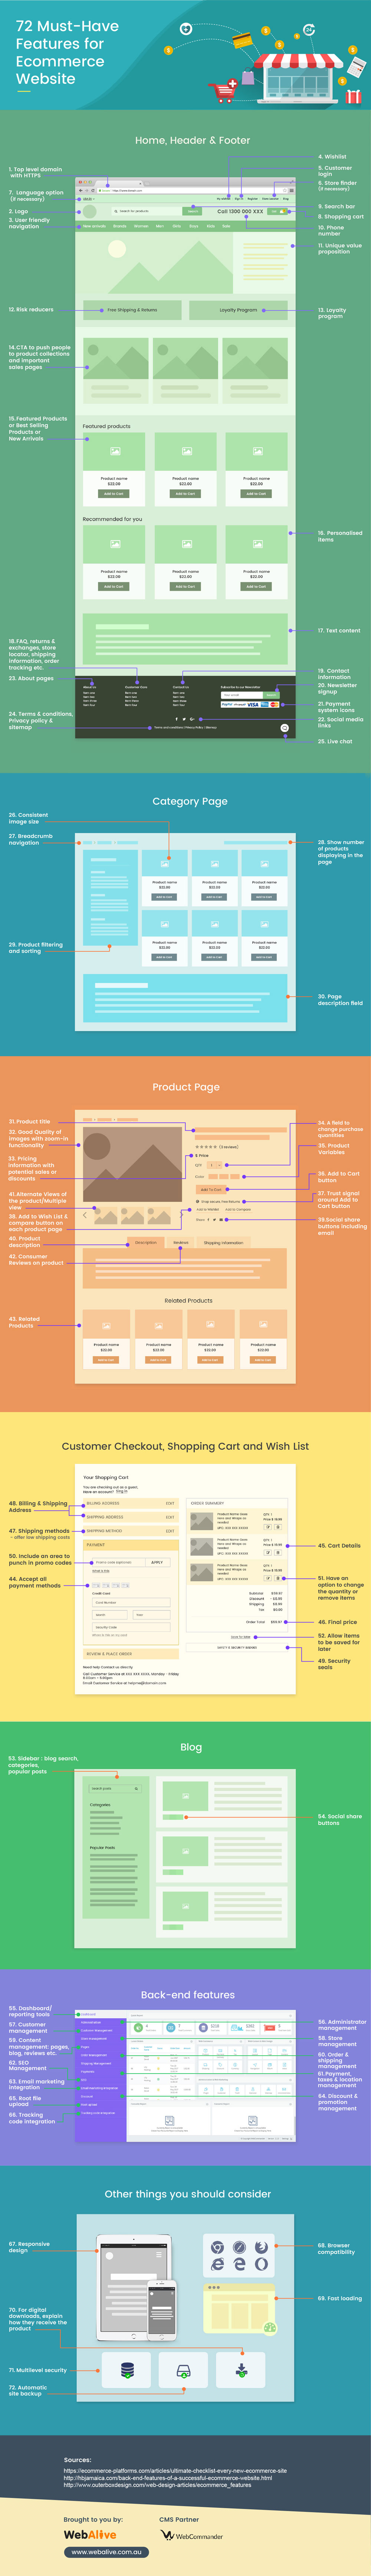 72 Top Must-have Features for an eCommerce Website [Infographic]